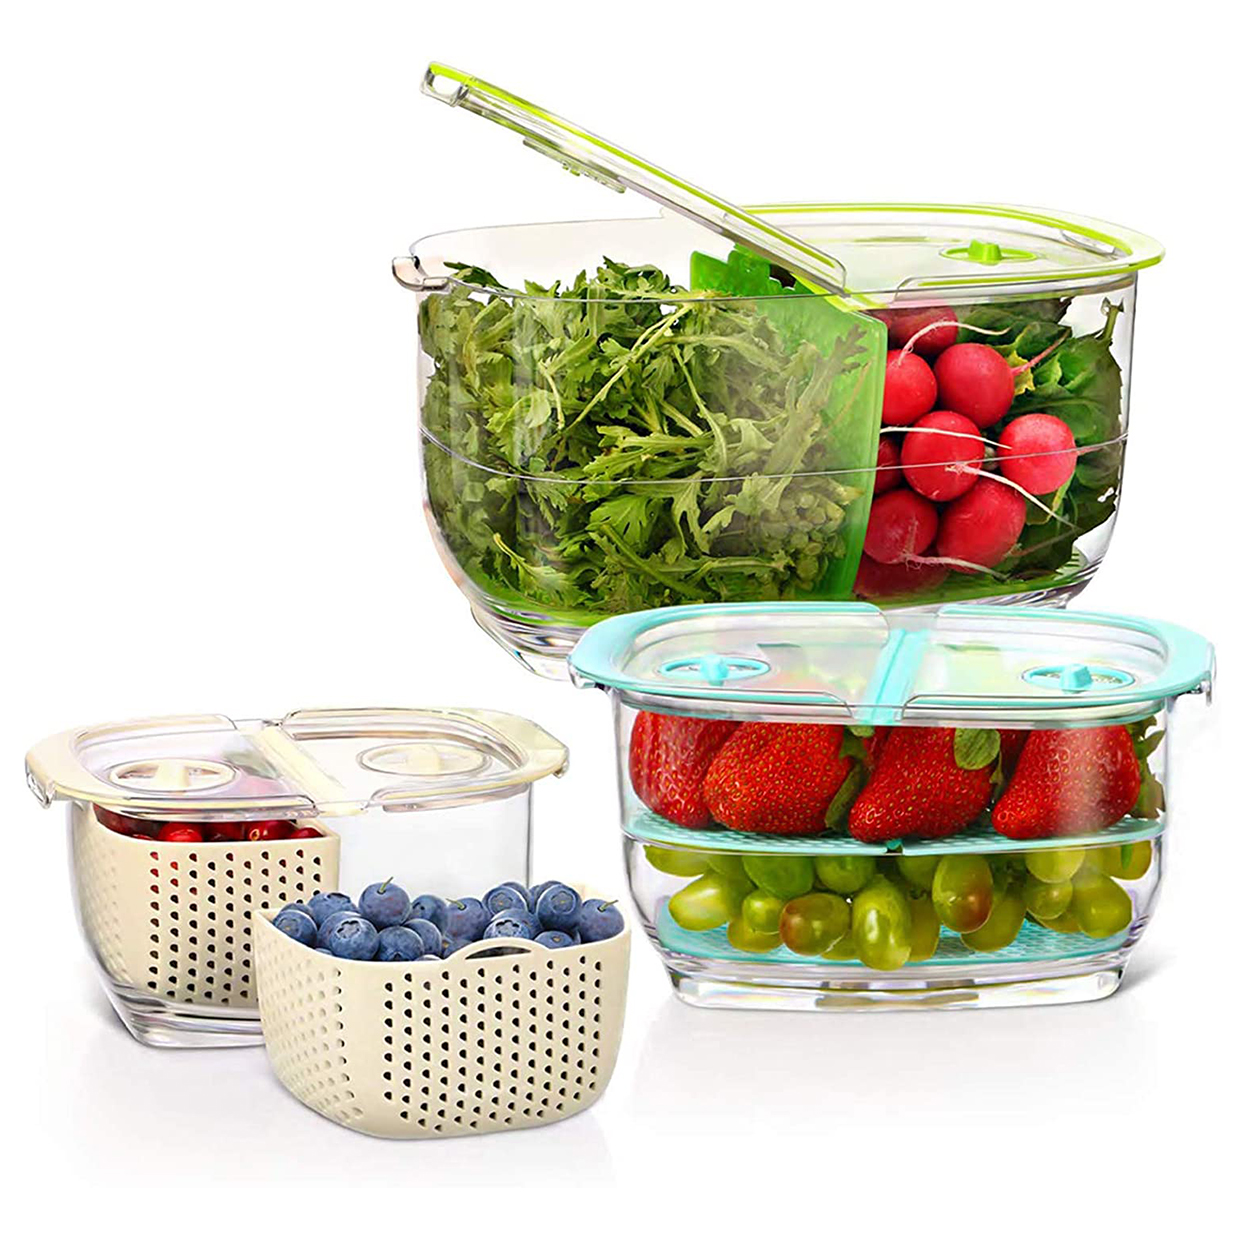 LUXEAR Fresh Produce Vegetable Fruit Storage Containers 3Piece Set